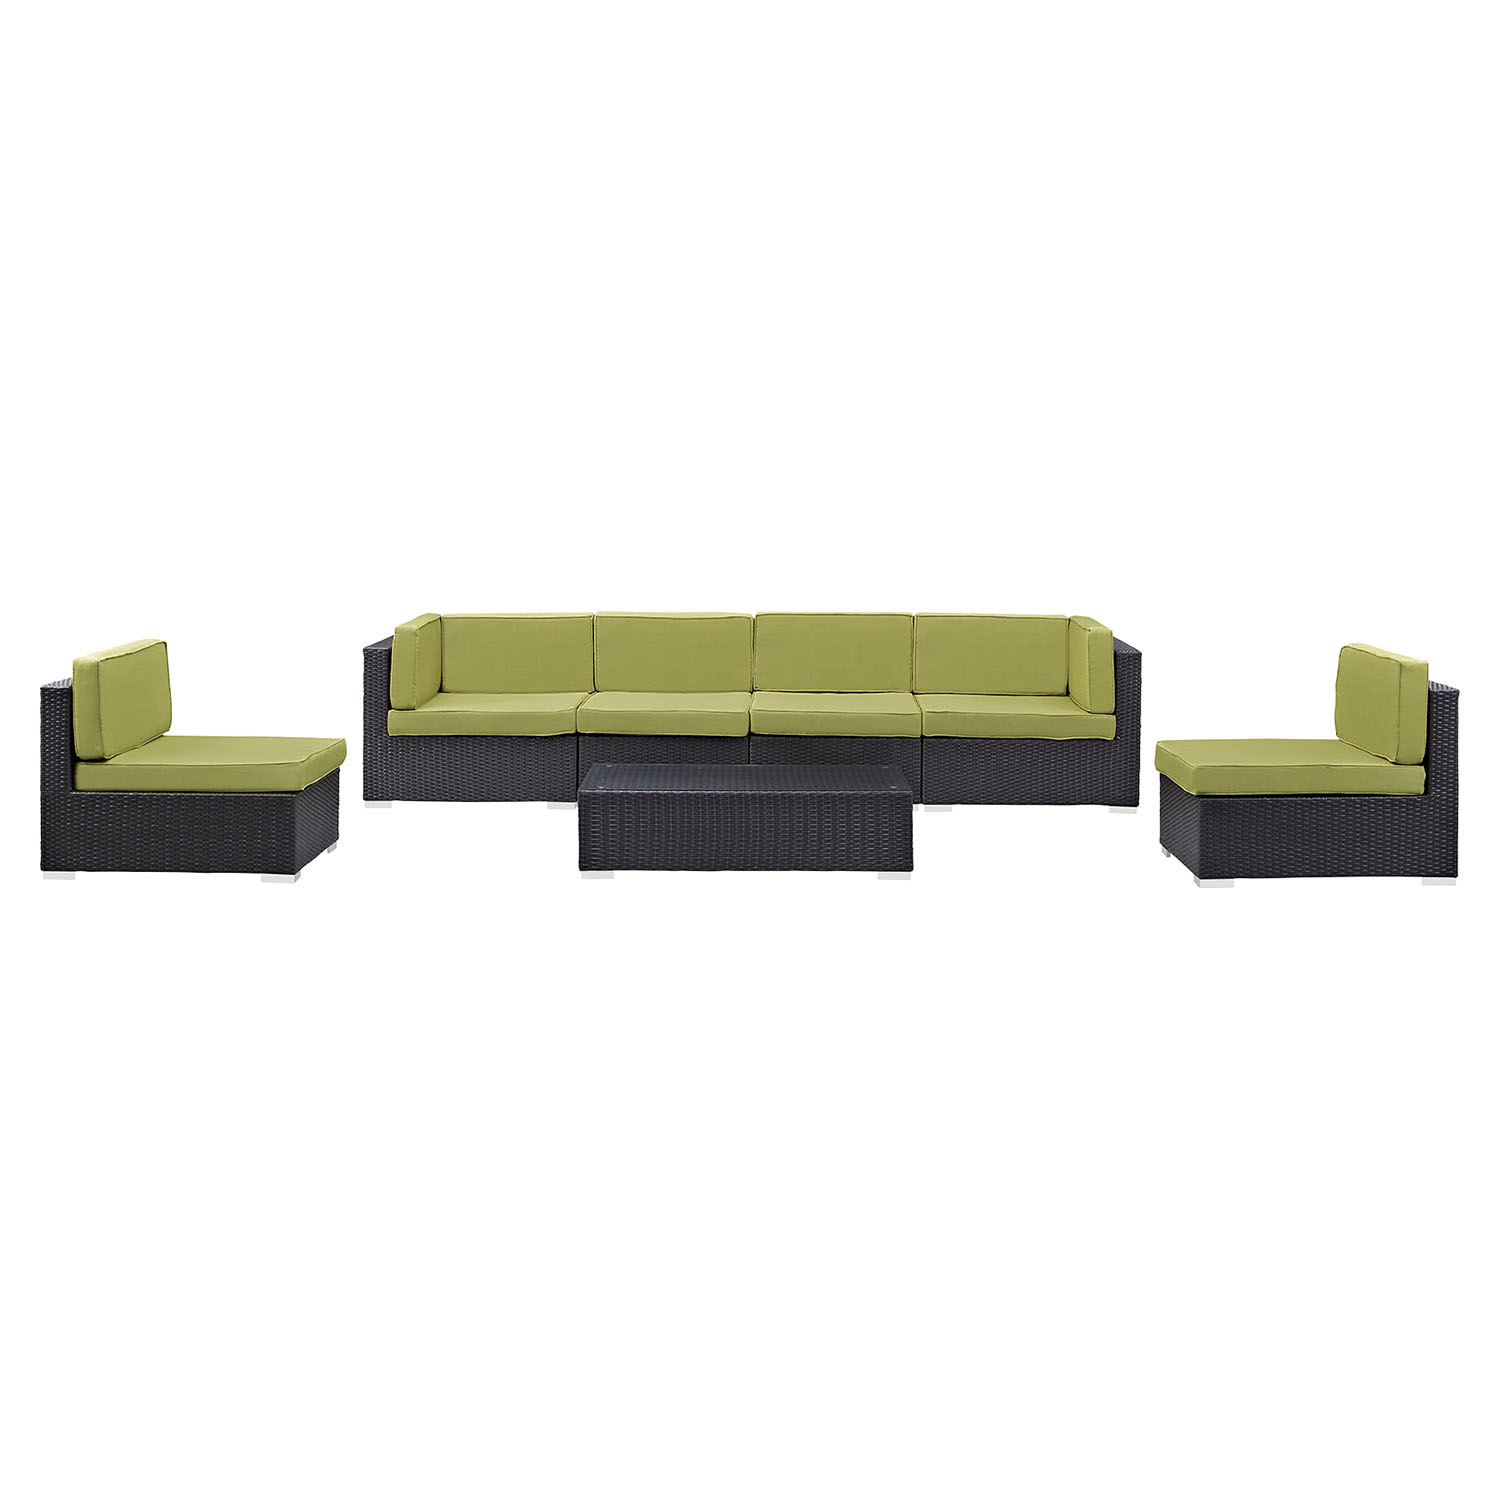 Gather 7 Pieces Espresso Peridot Outdoor Patio Sectional Set - EEI-1838-EXP-PER-SET